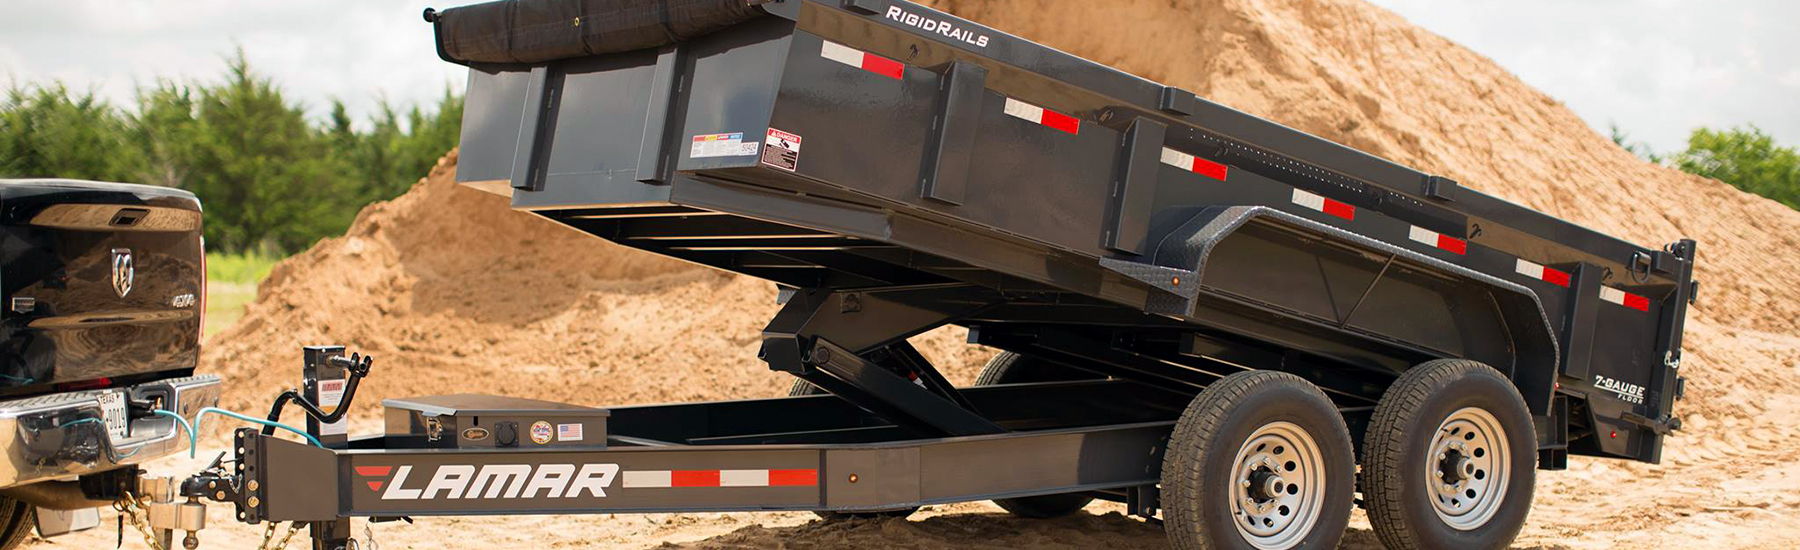 Home Trailers In Midland Odessa Tx Y All Haul Gooseneck